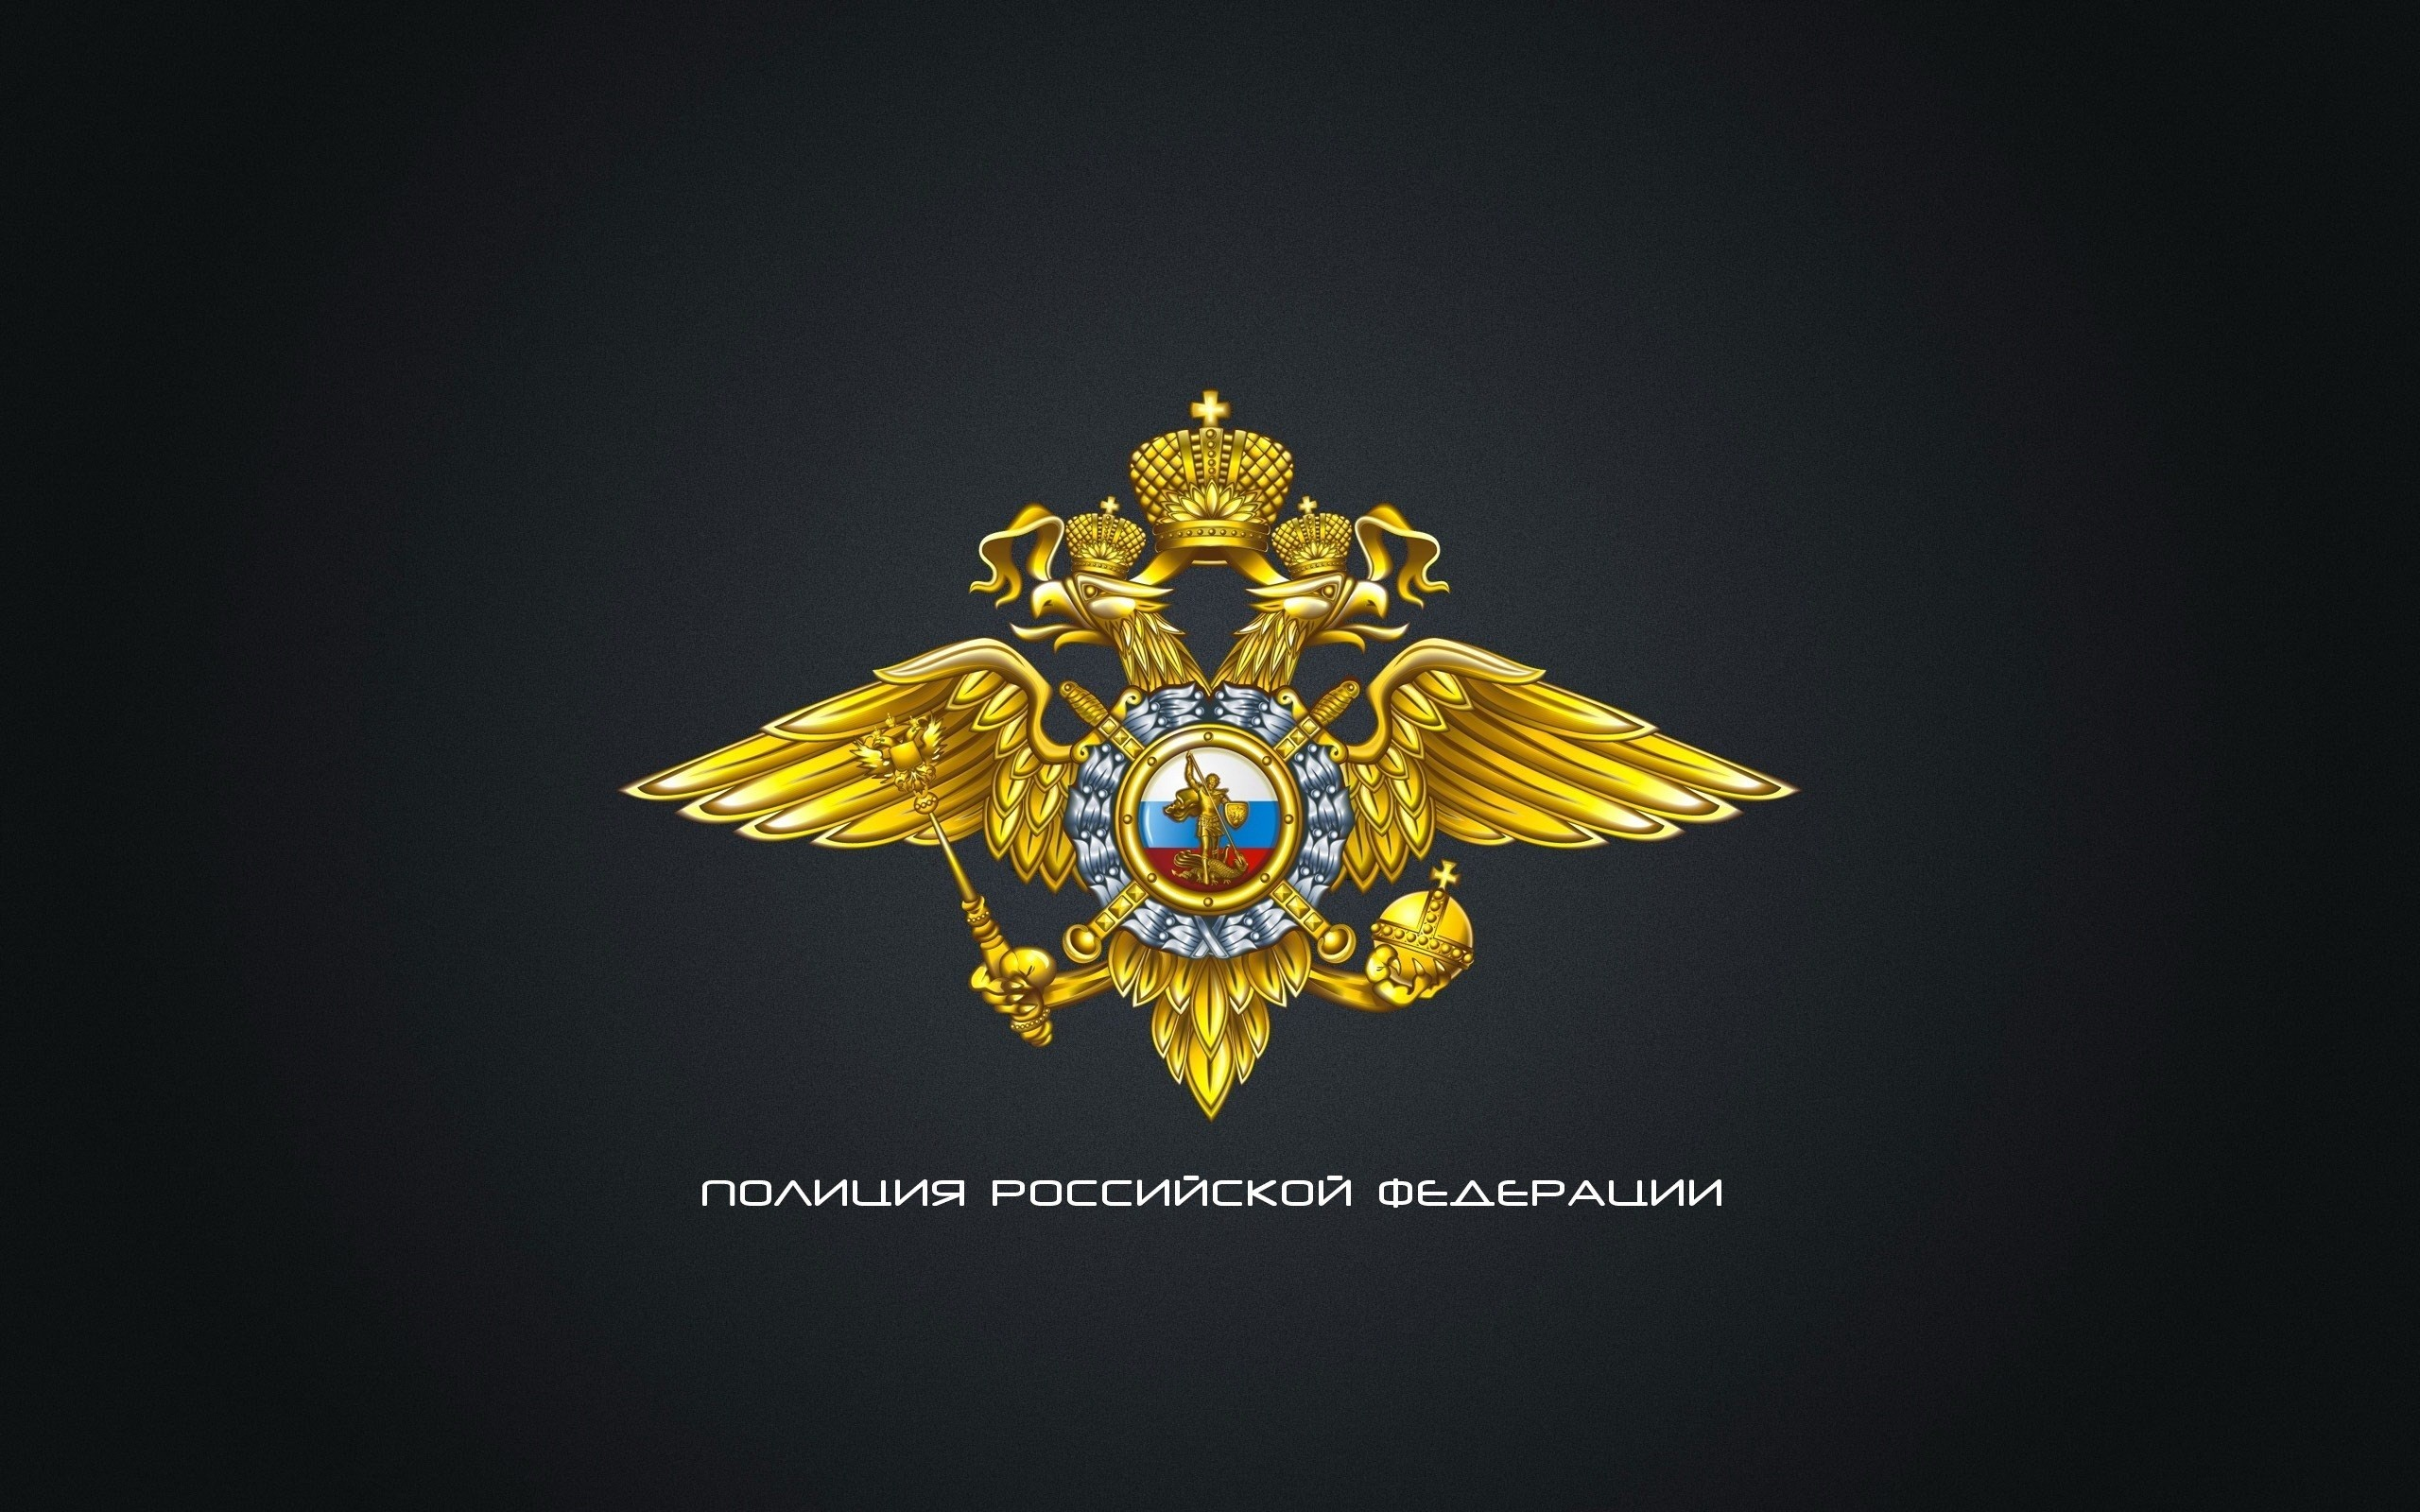 russian army image for mac computers (Wentworth Waite 2560×1600)